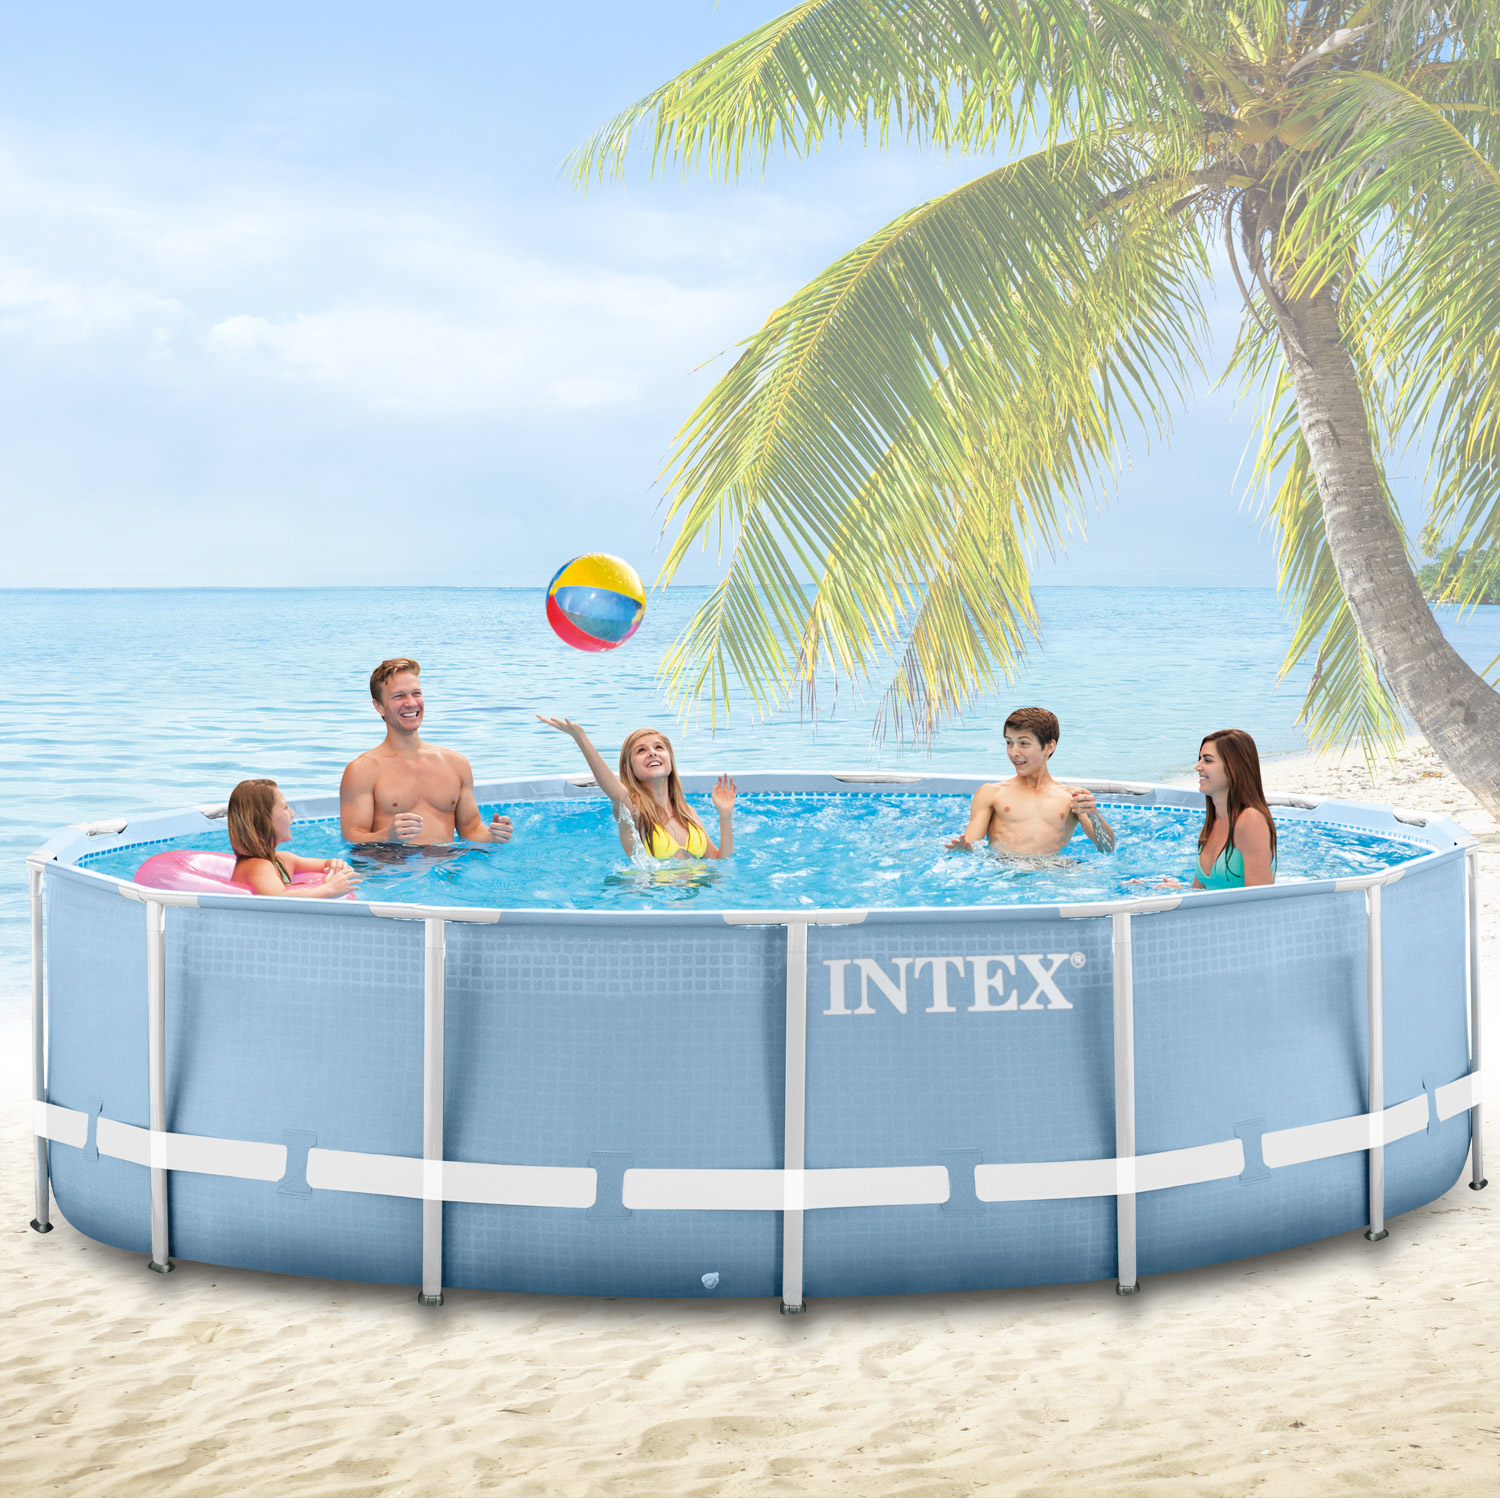 Intex piscine piscina fuori terra frame pool rotonda for Piscine intex